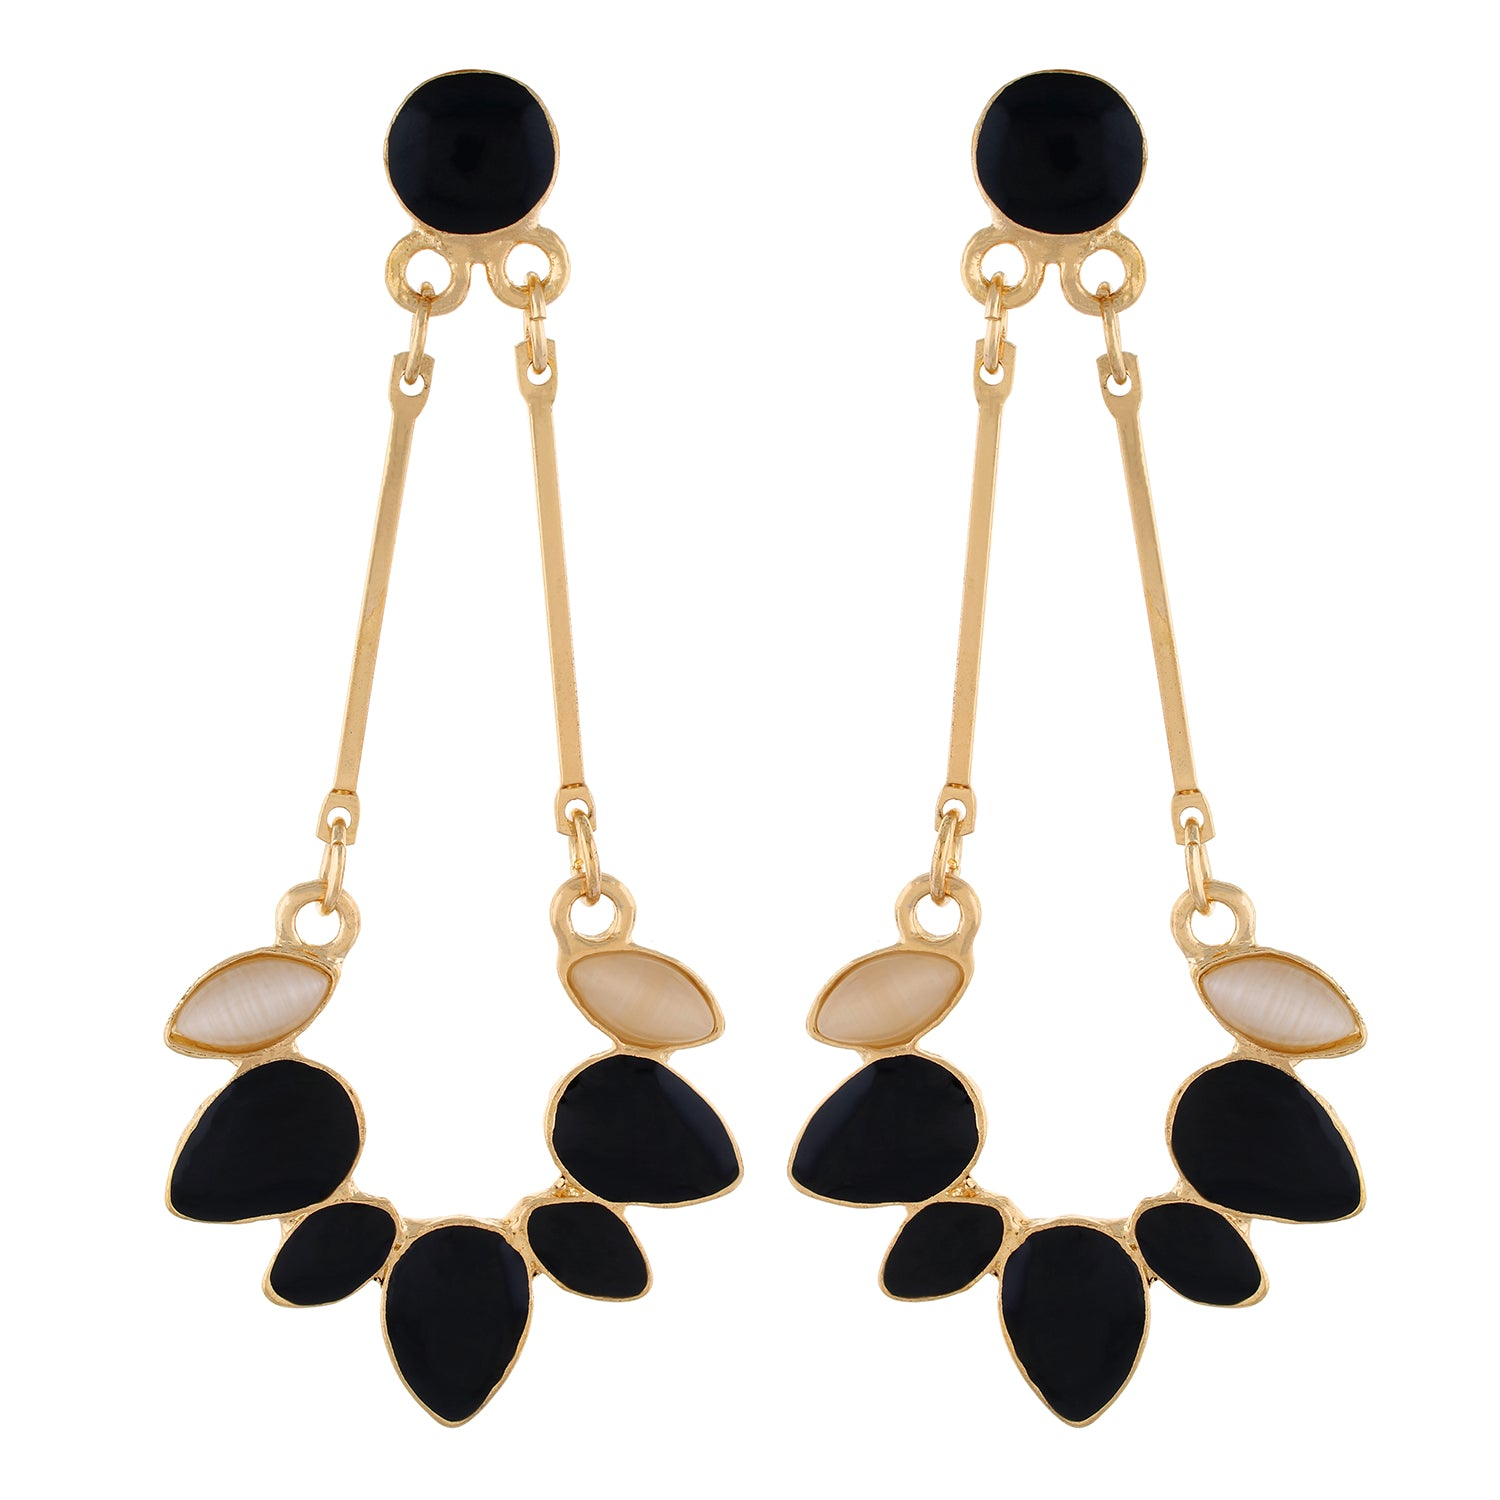 Black colour Drop Design Hanging Earrings for Girls and Women